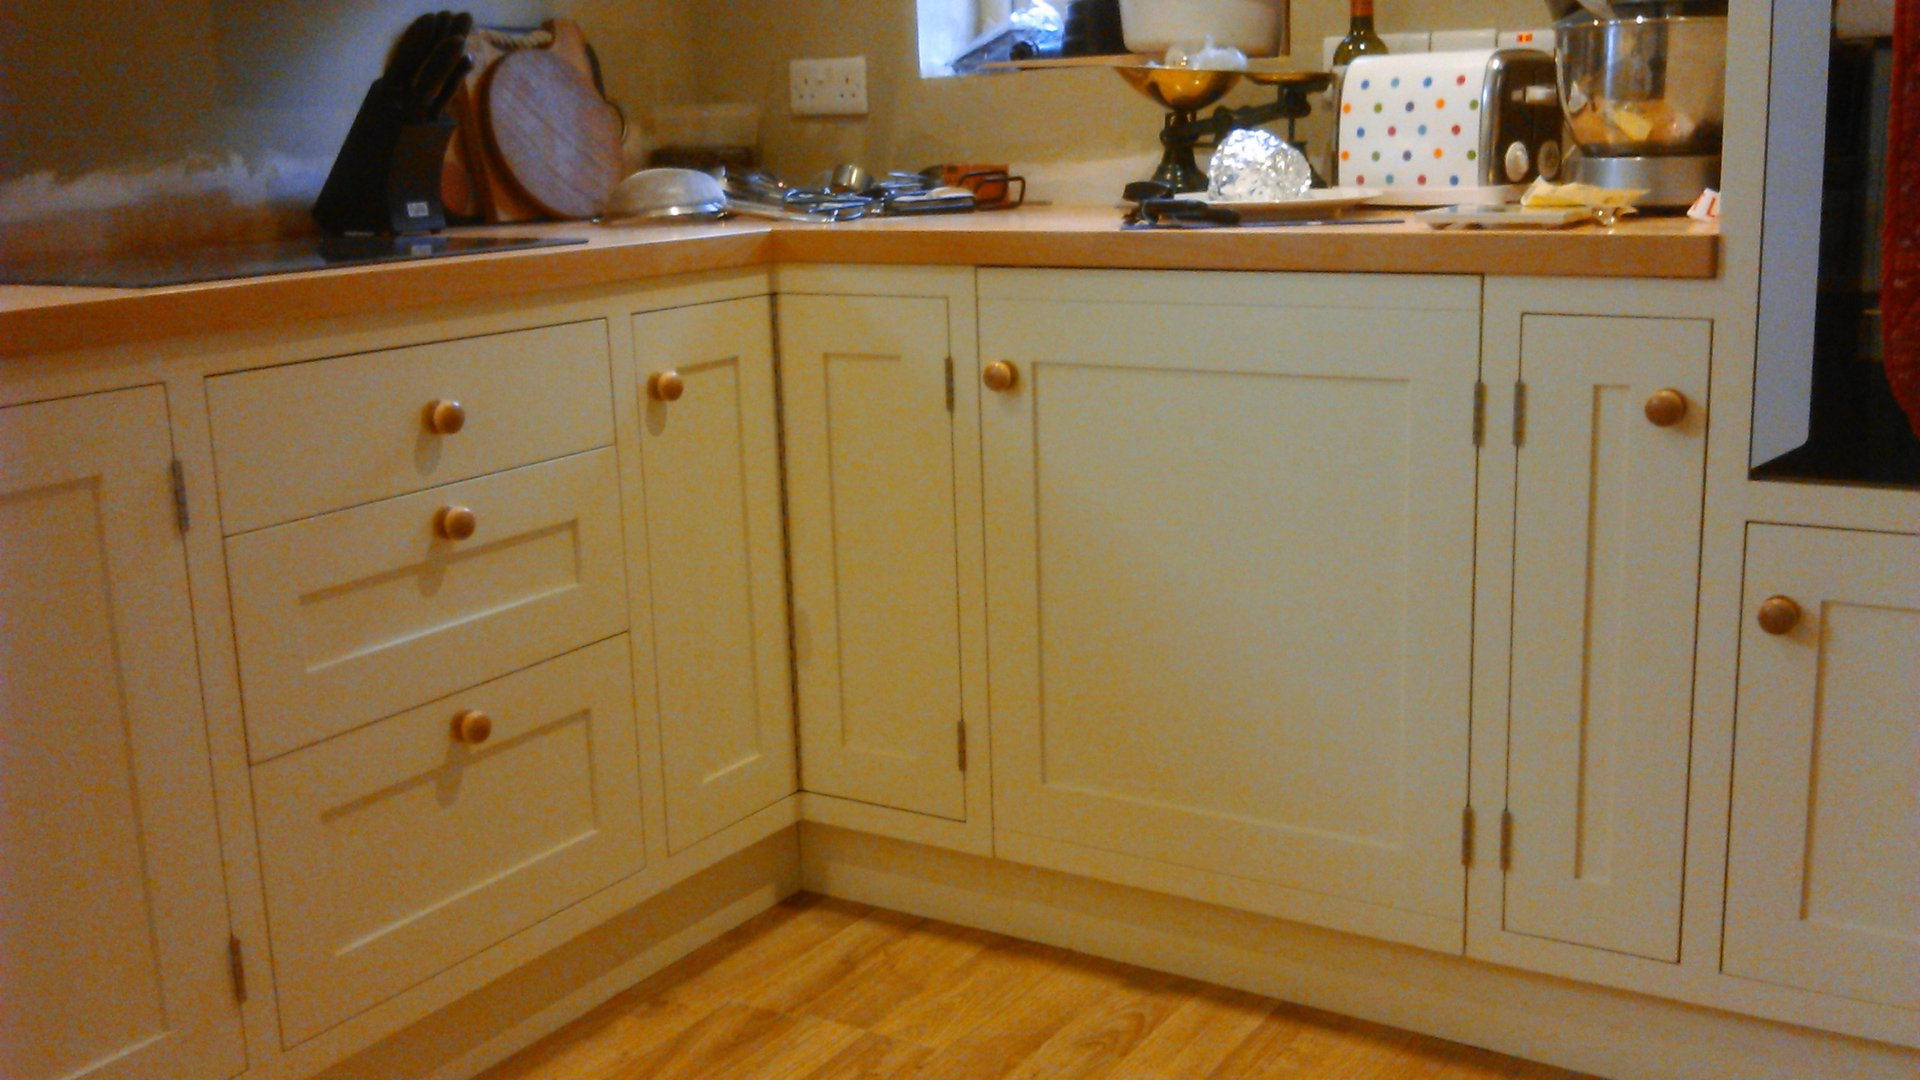 shaker style kitchen units in cream with wood worktops